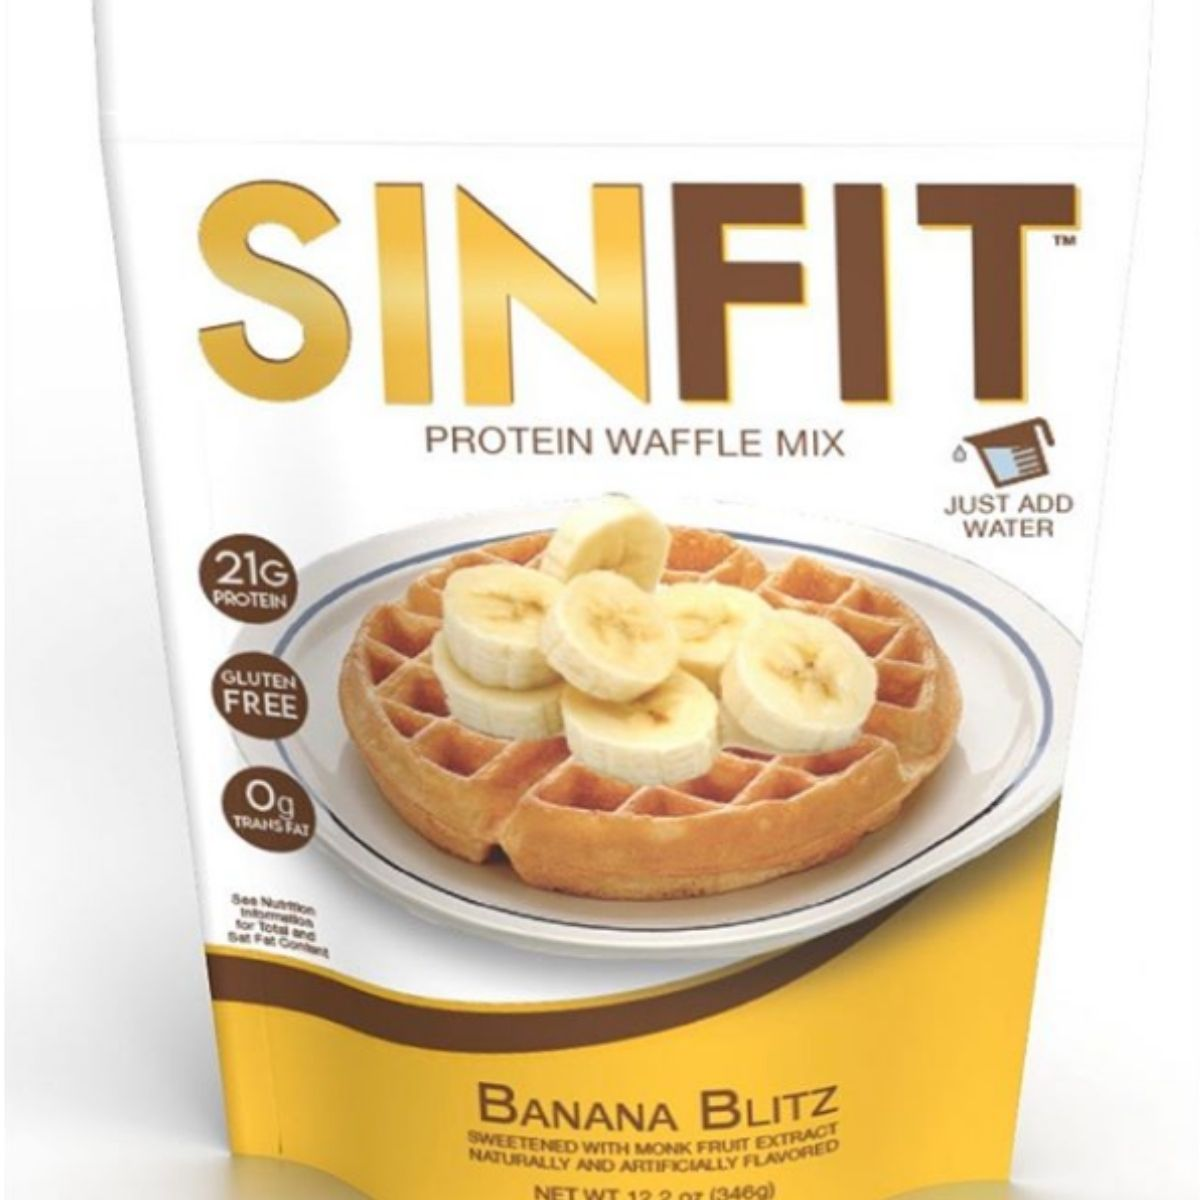 Sinfit Nutrition Announces All New Protein Waffles